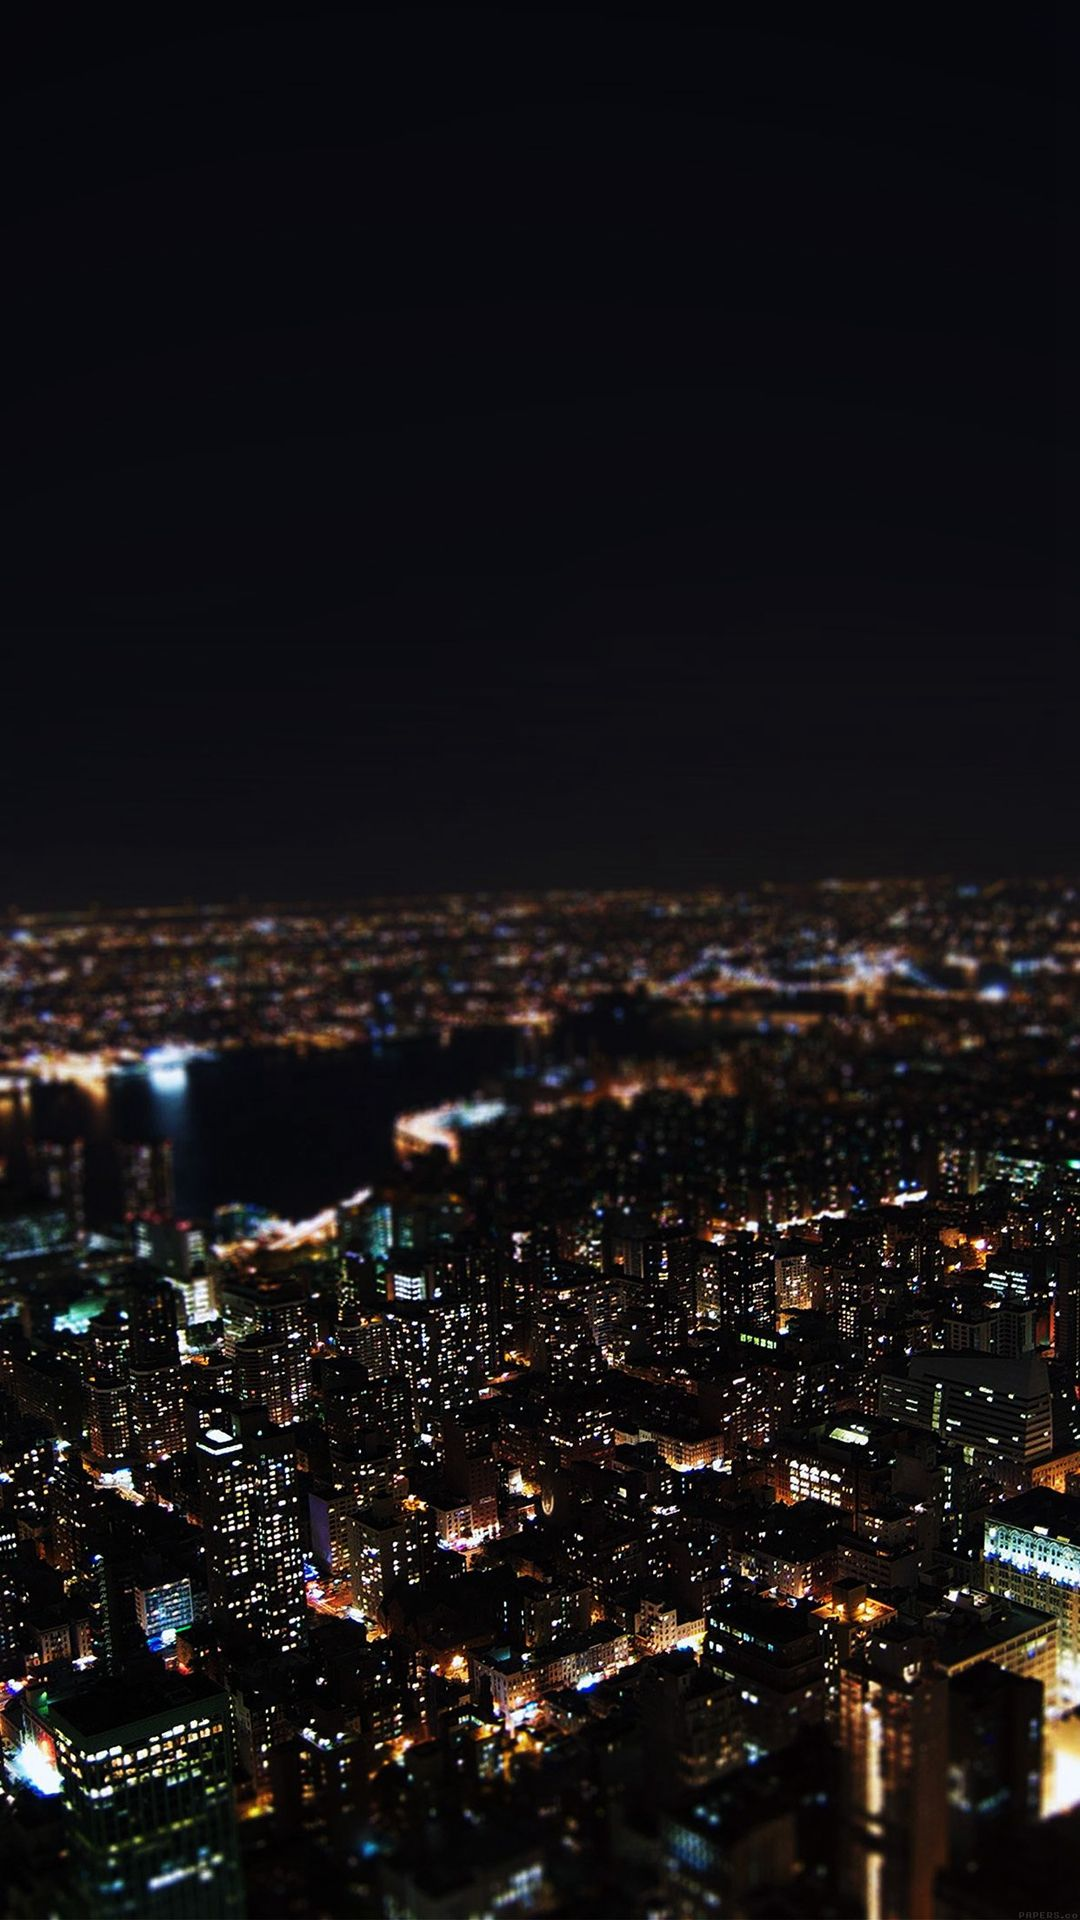 Dark Night City Building Skyview iPhone 6 wallpaper in